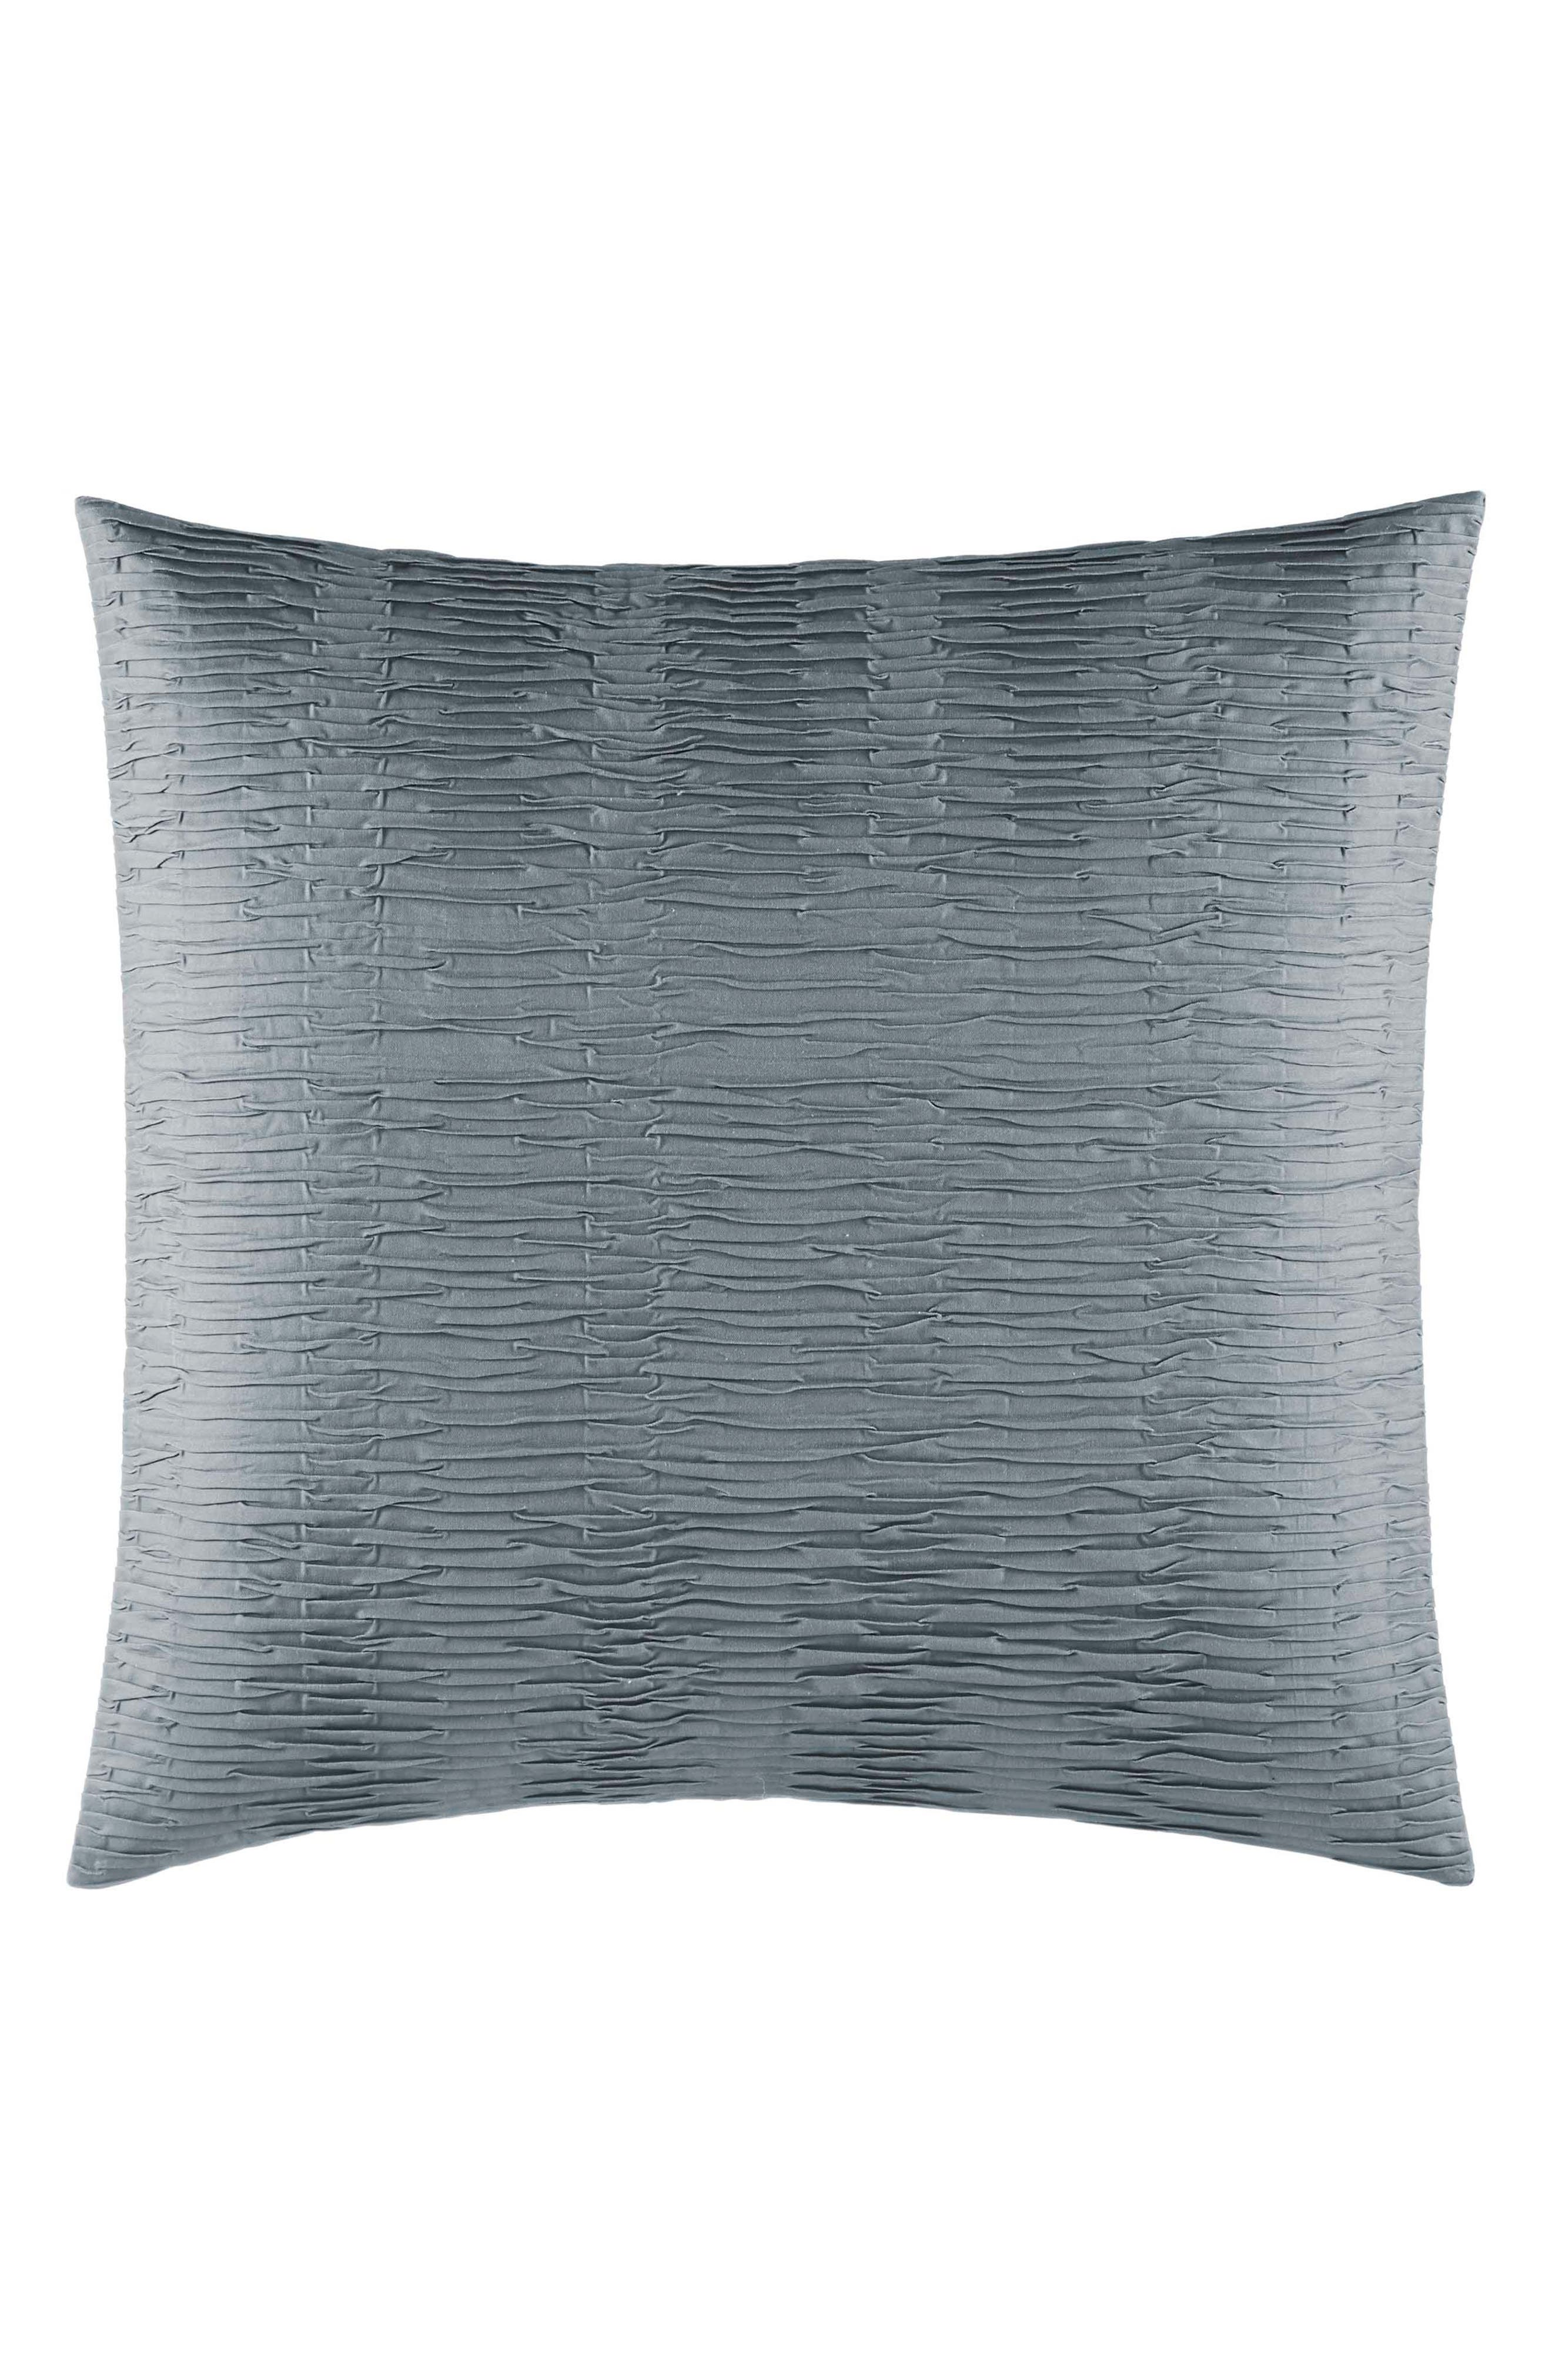 Marble Shibori Textured Pleat Euro Sham, Main, color, DARK SILVER BLUE